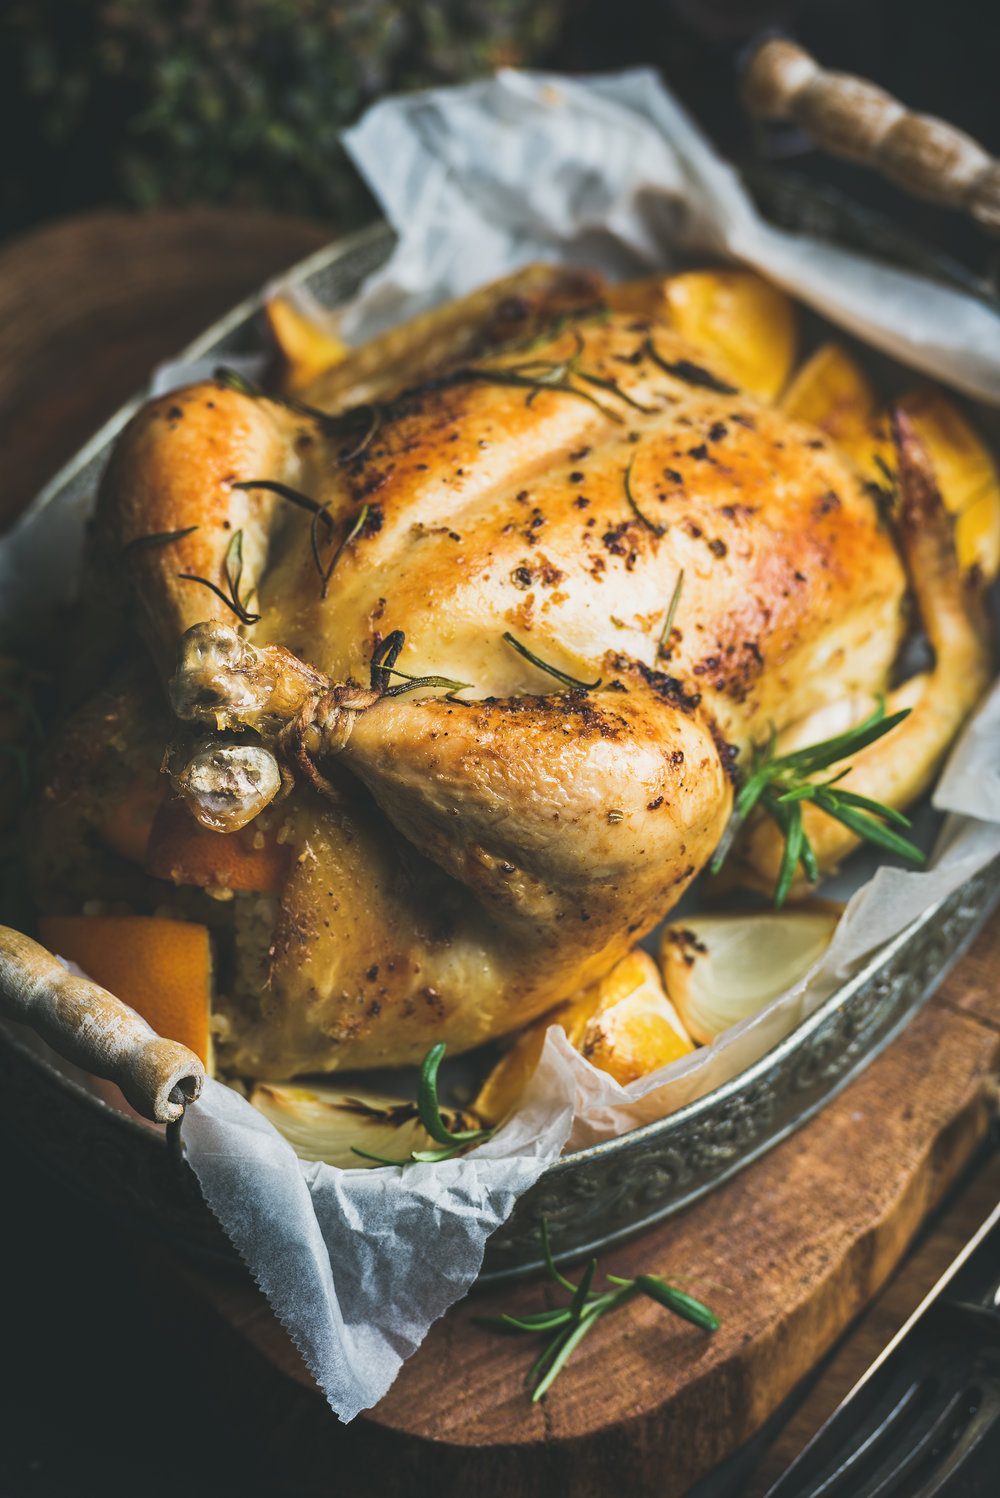 Perfect roast chicken with dijon mustard and herbs